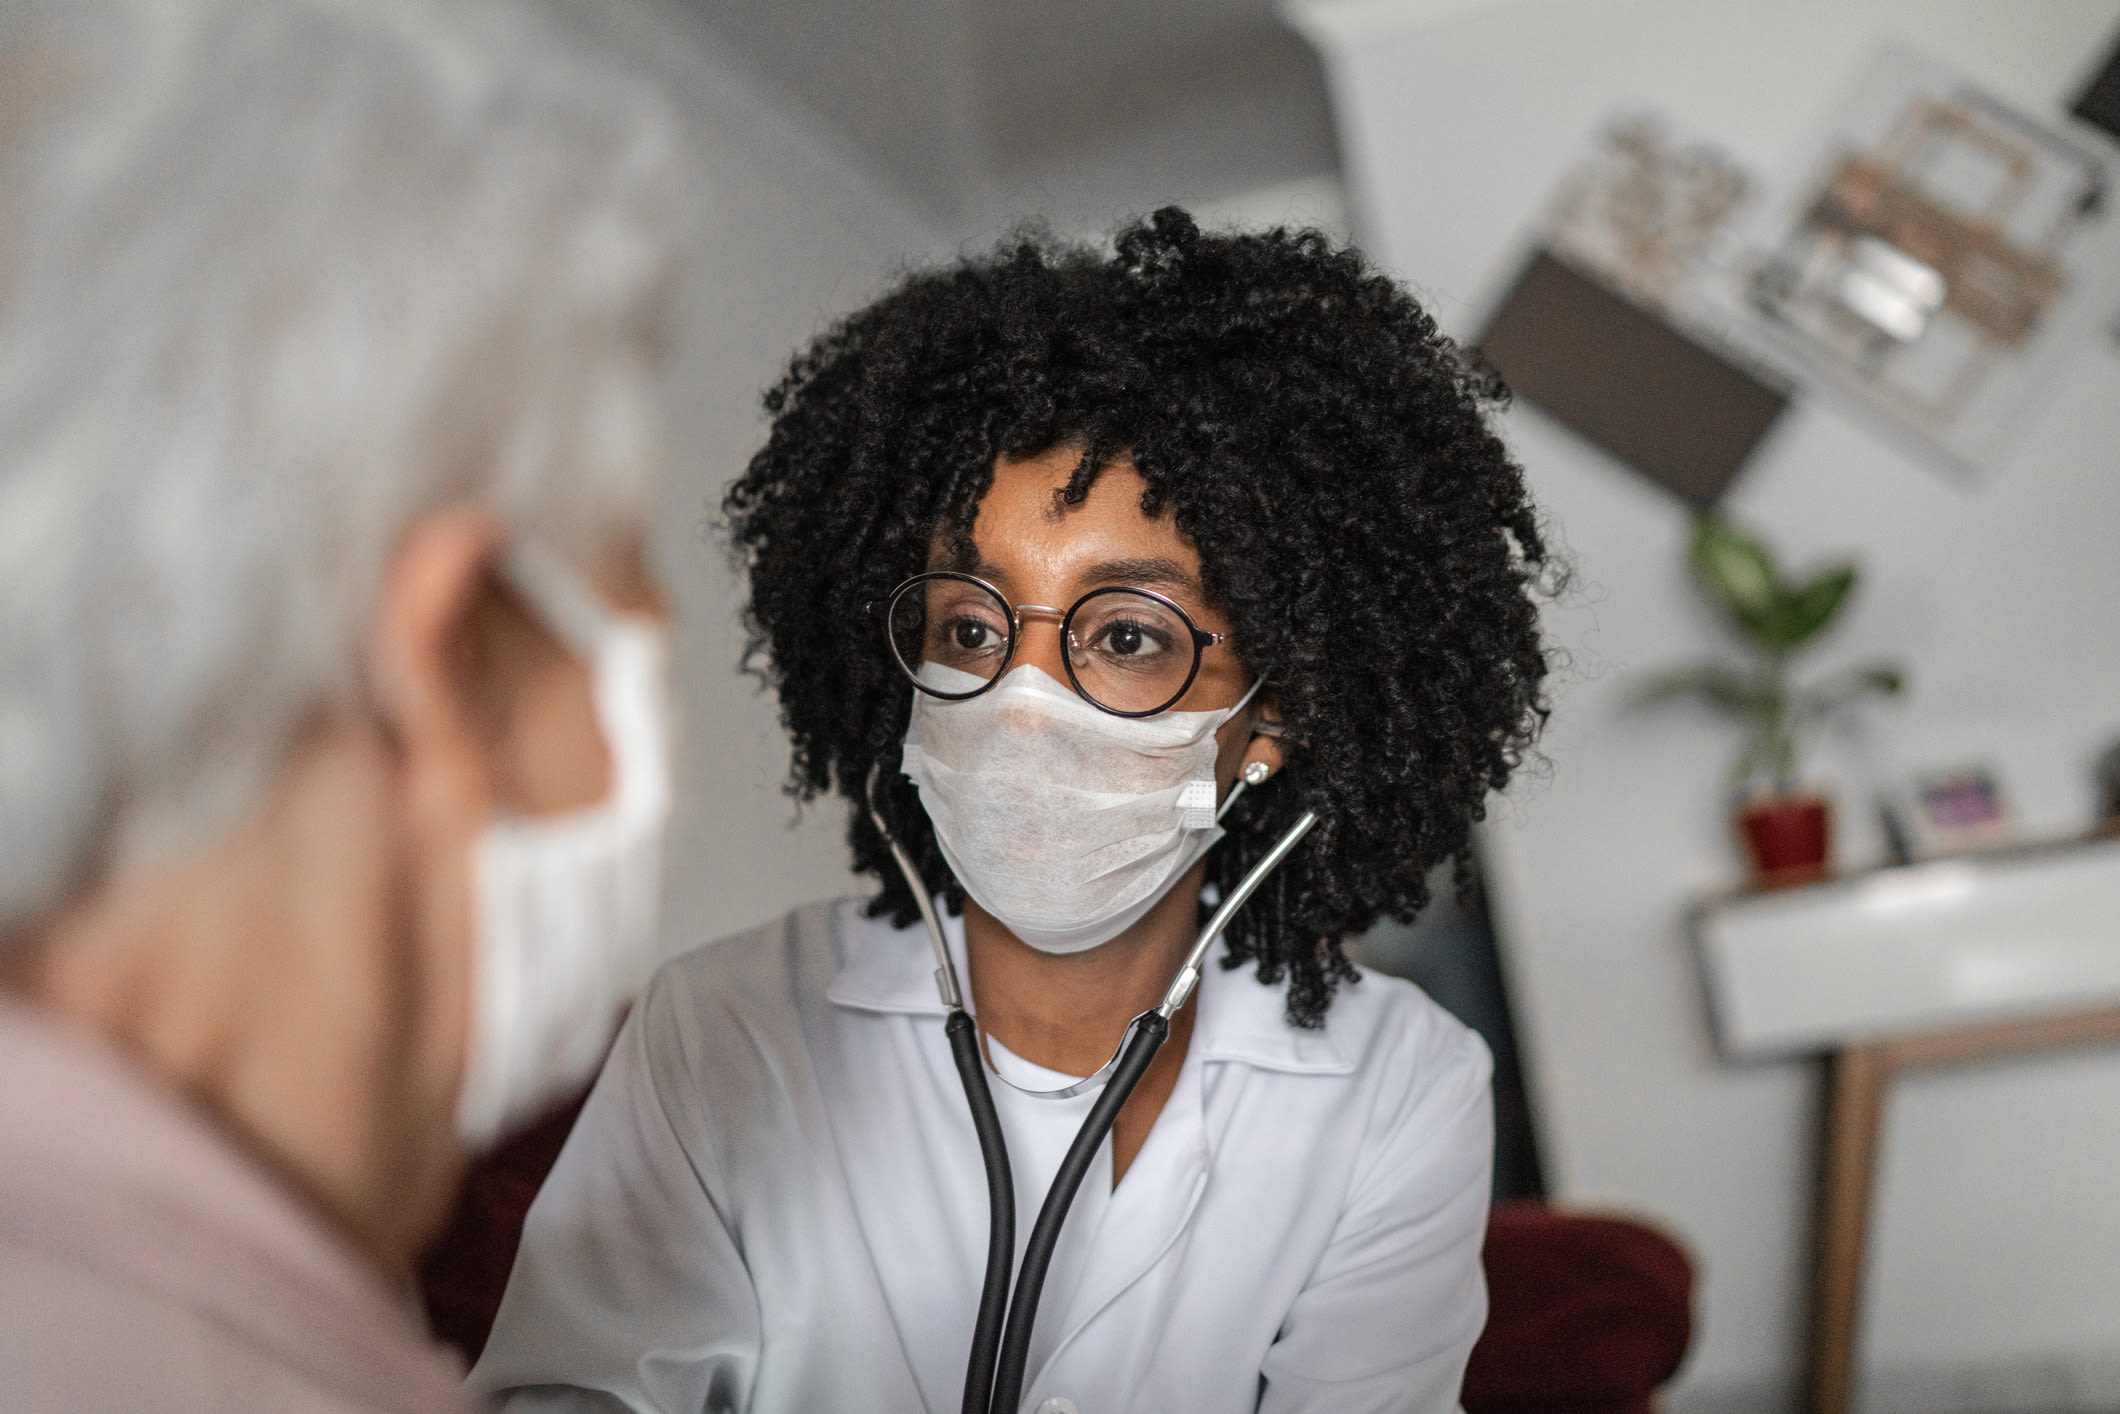 Doctor and patient wear face masks during consultation